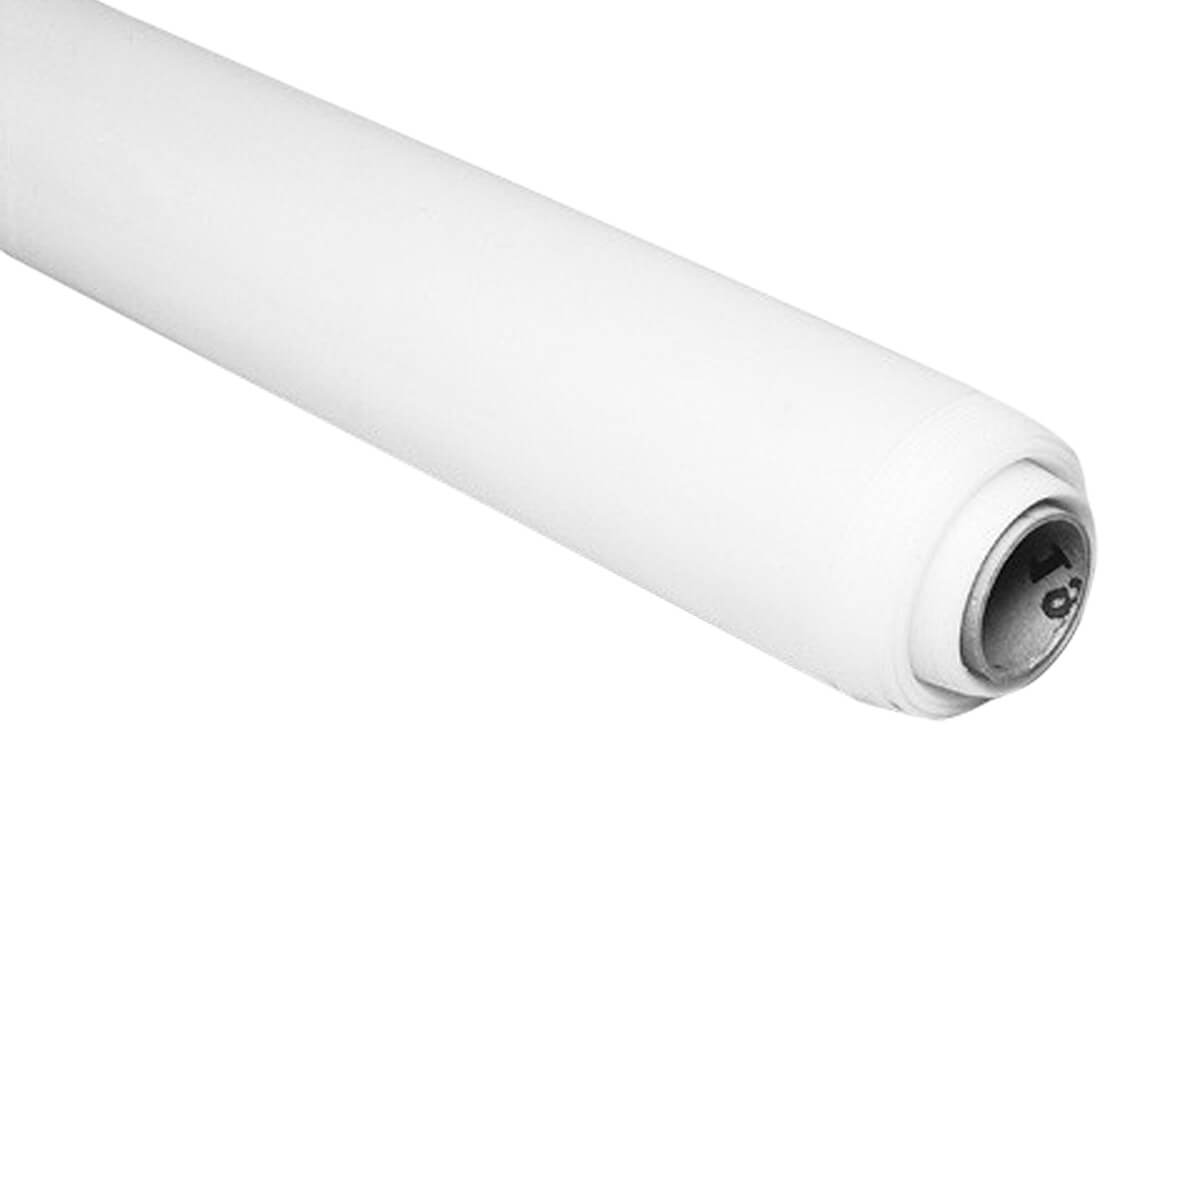 Clear Poly Vapour Barrier - 10' x 100'